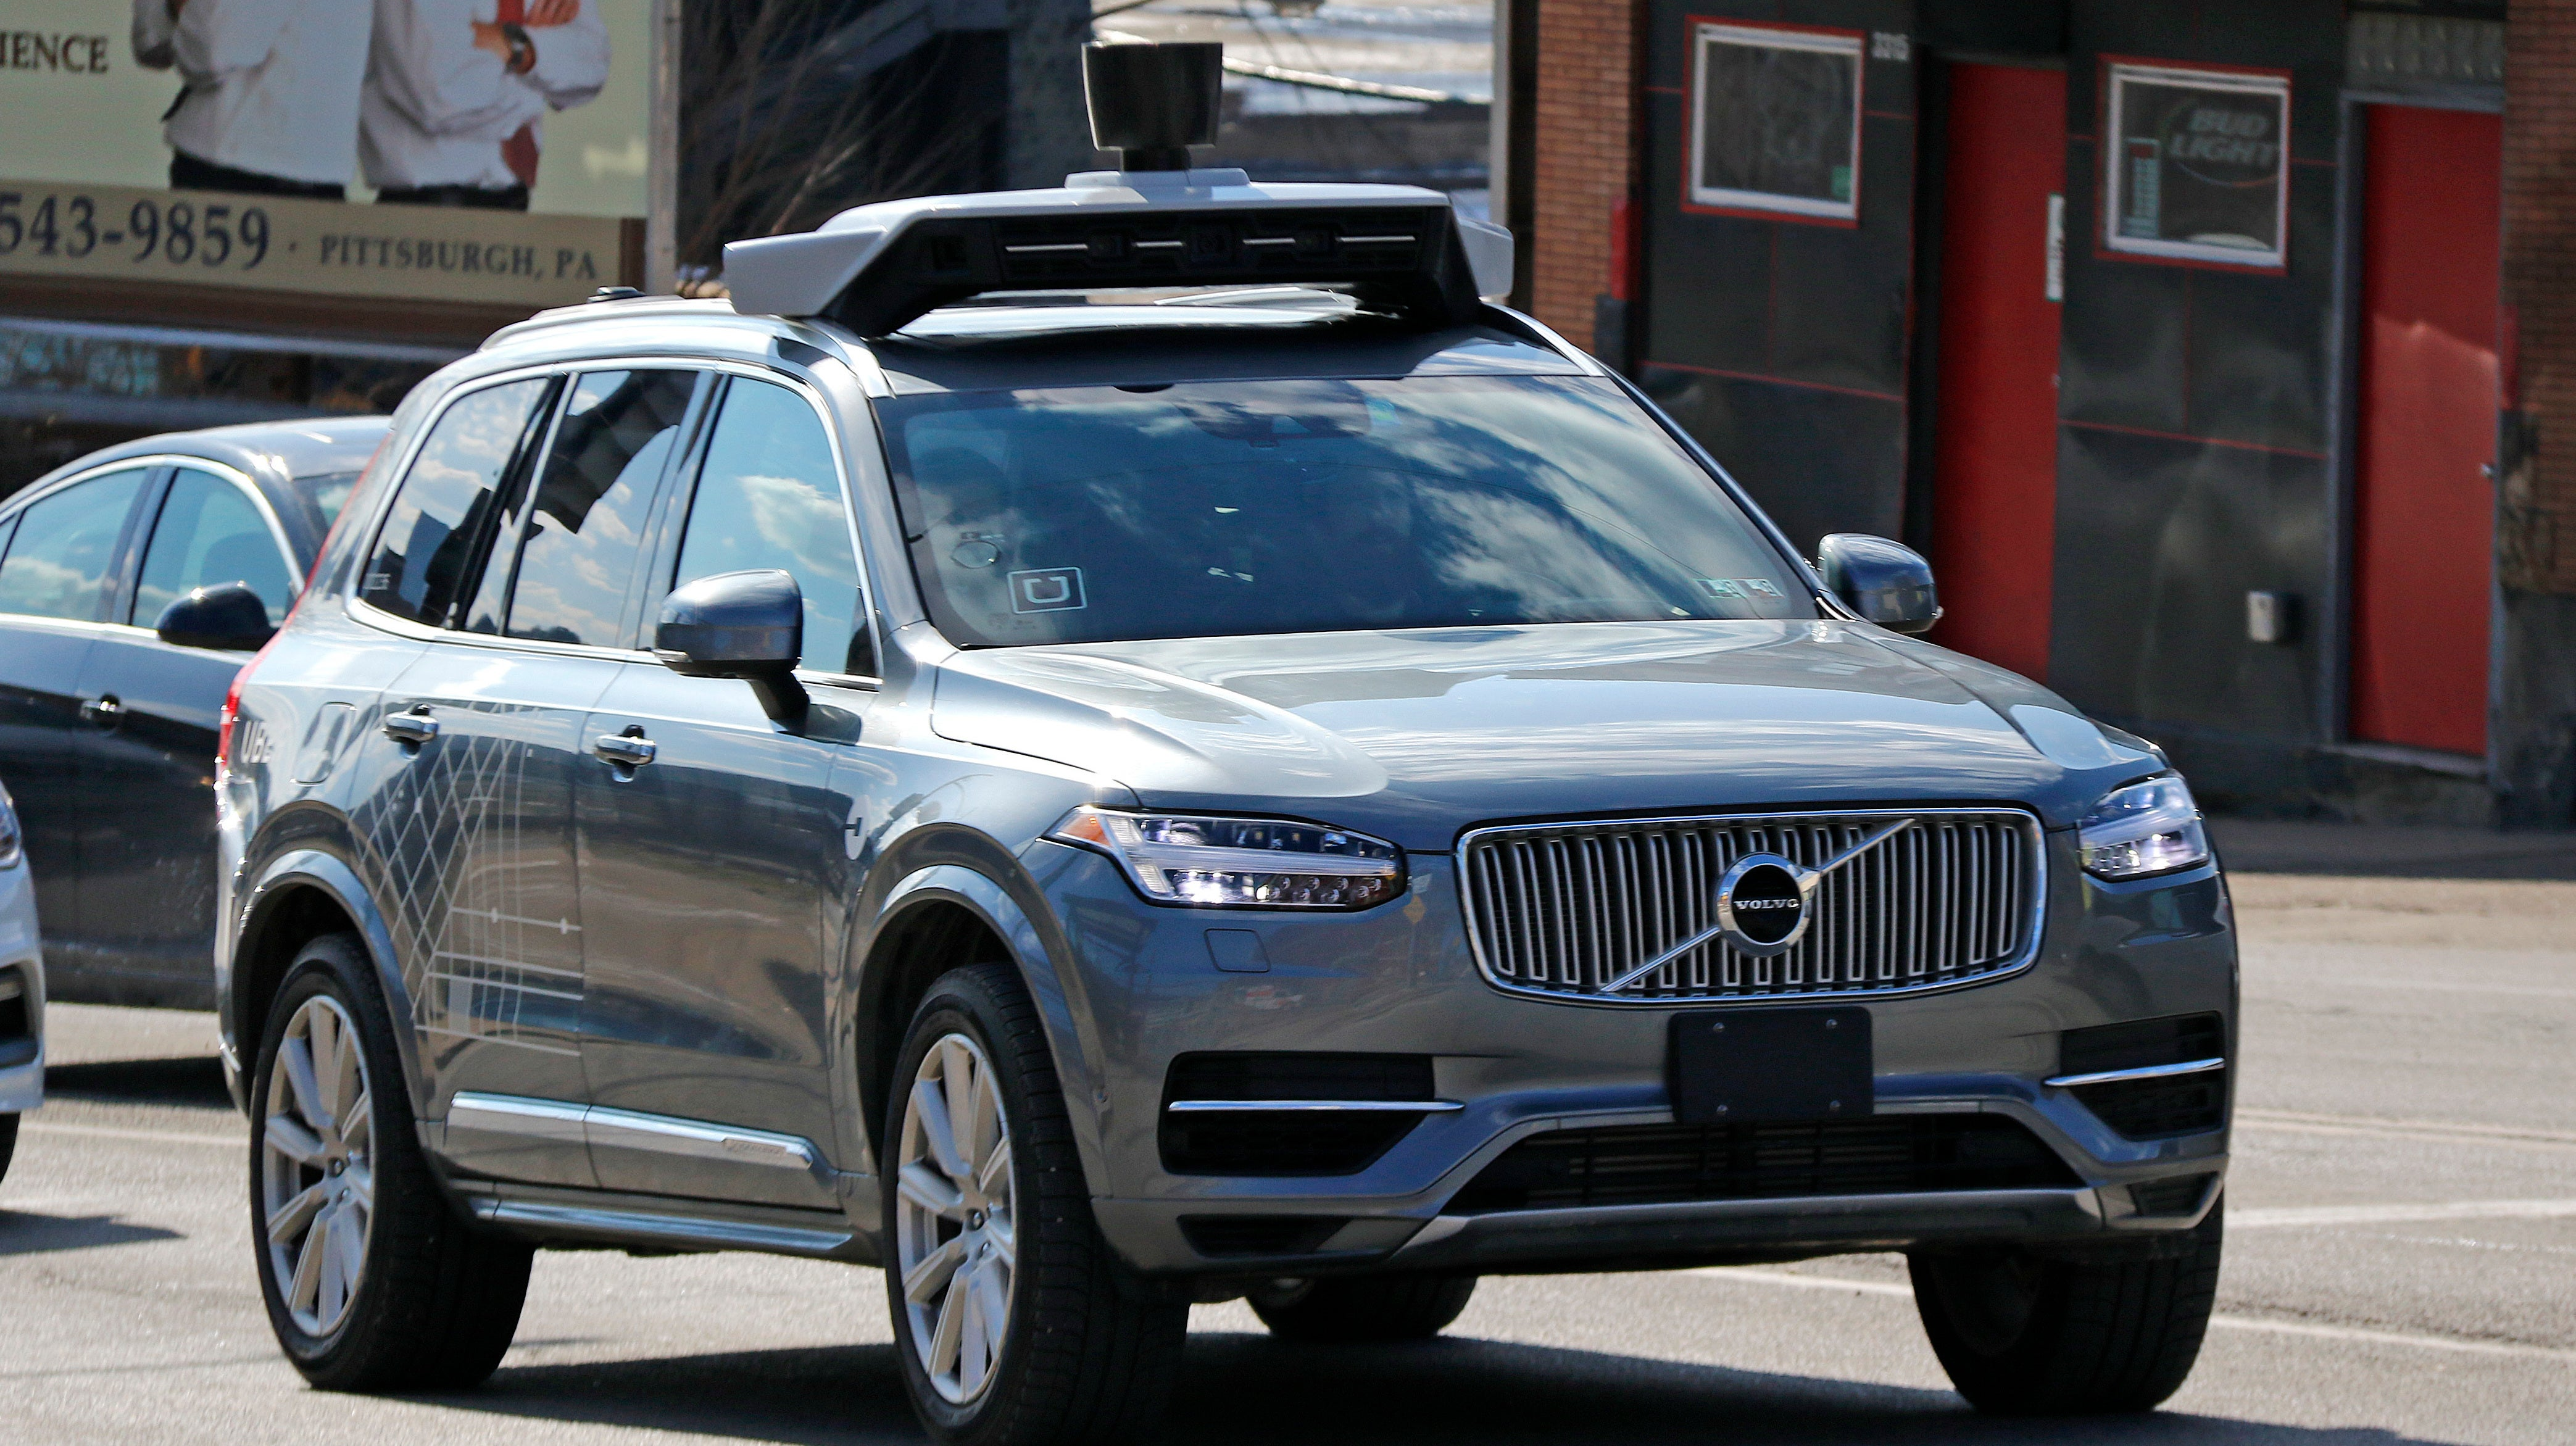 Why Volvo's Auto-Braking System Might Have Kept The Self-Driving Uber Crash From Being Fatal